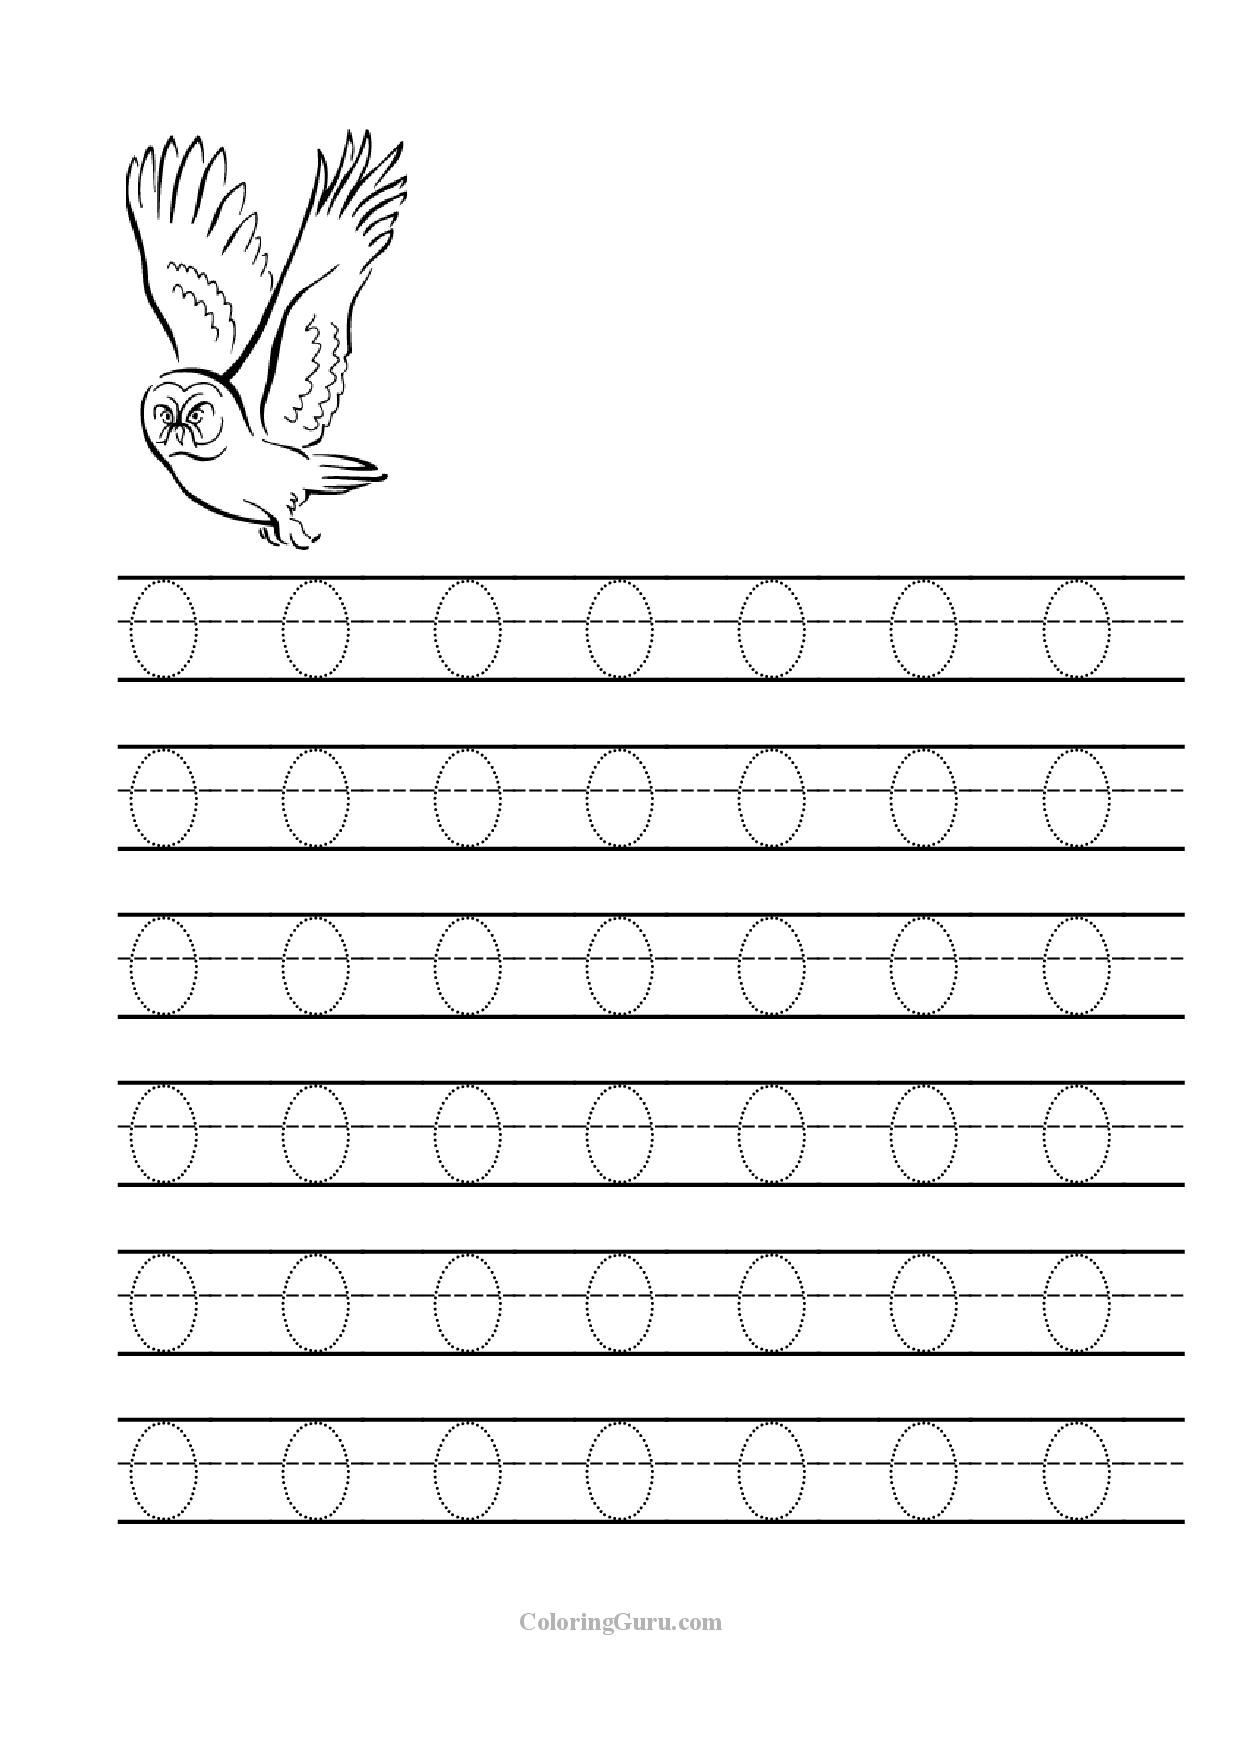 Letter O Worksheets for Preschool Free Printable Tracing Letter O Worksheets for Preschool